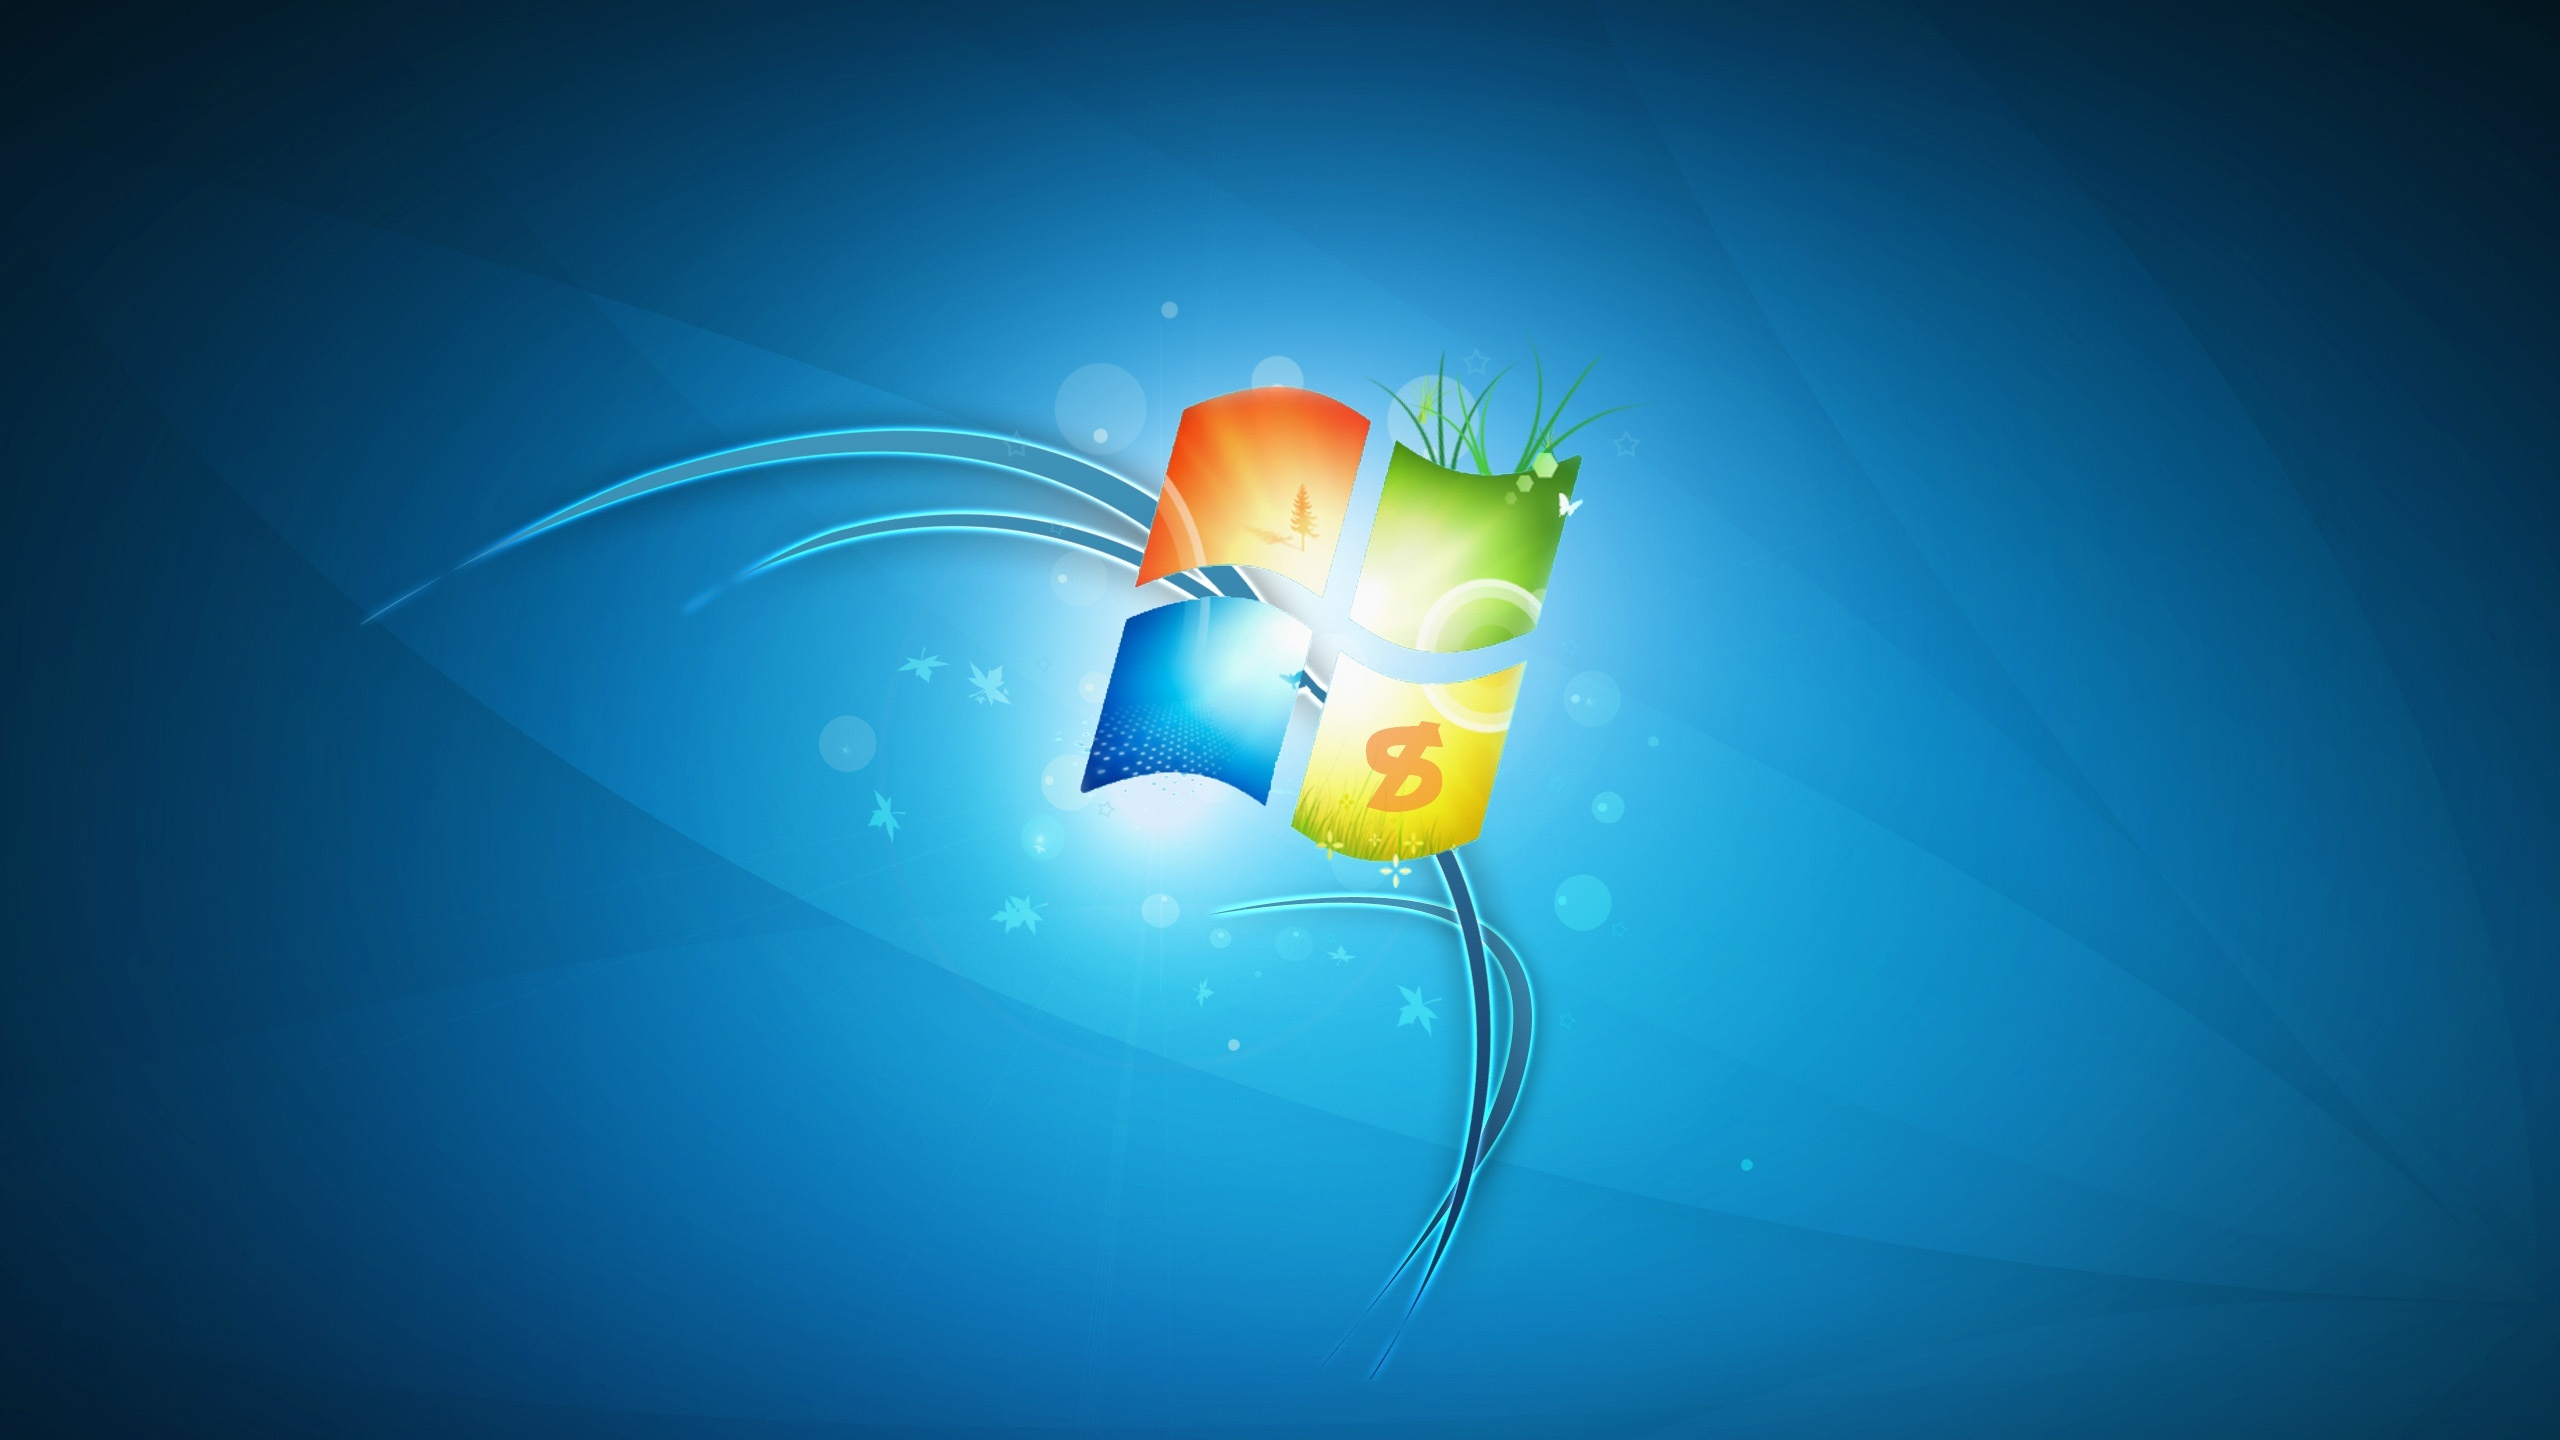 Windows8 2560x1440 2560x1440